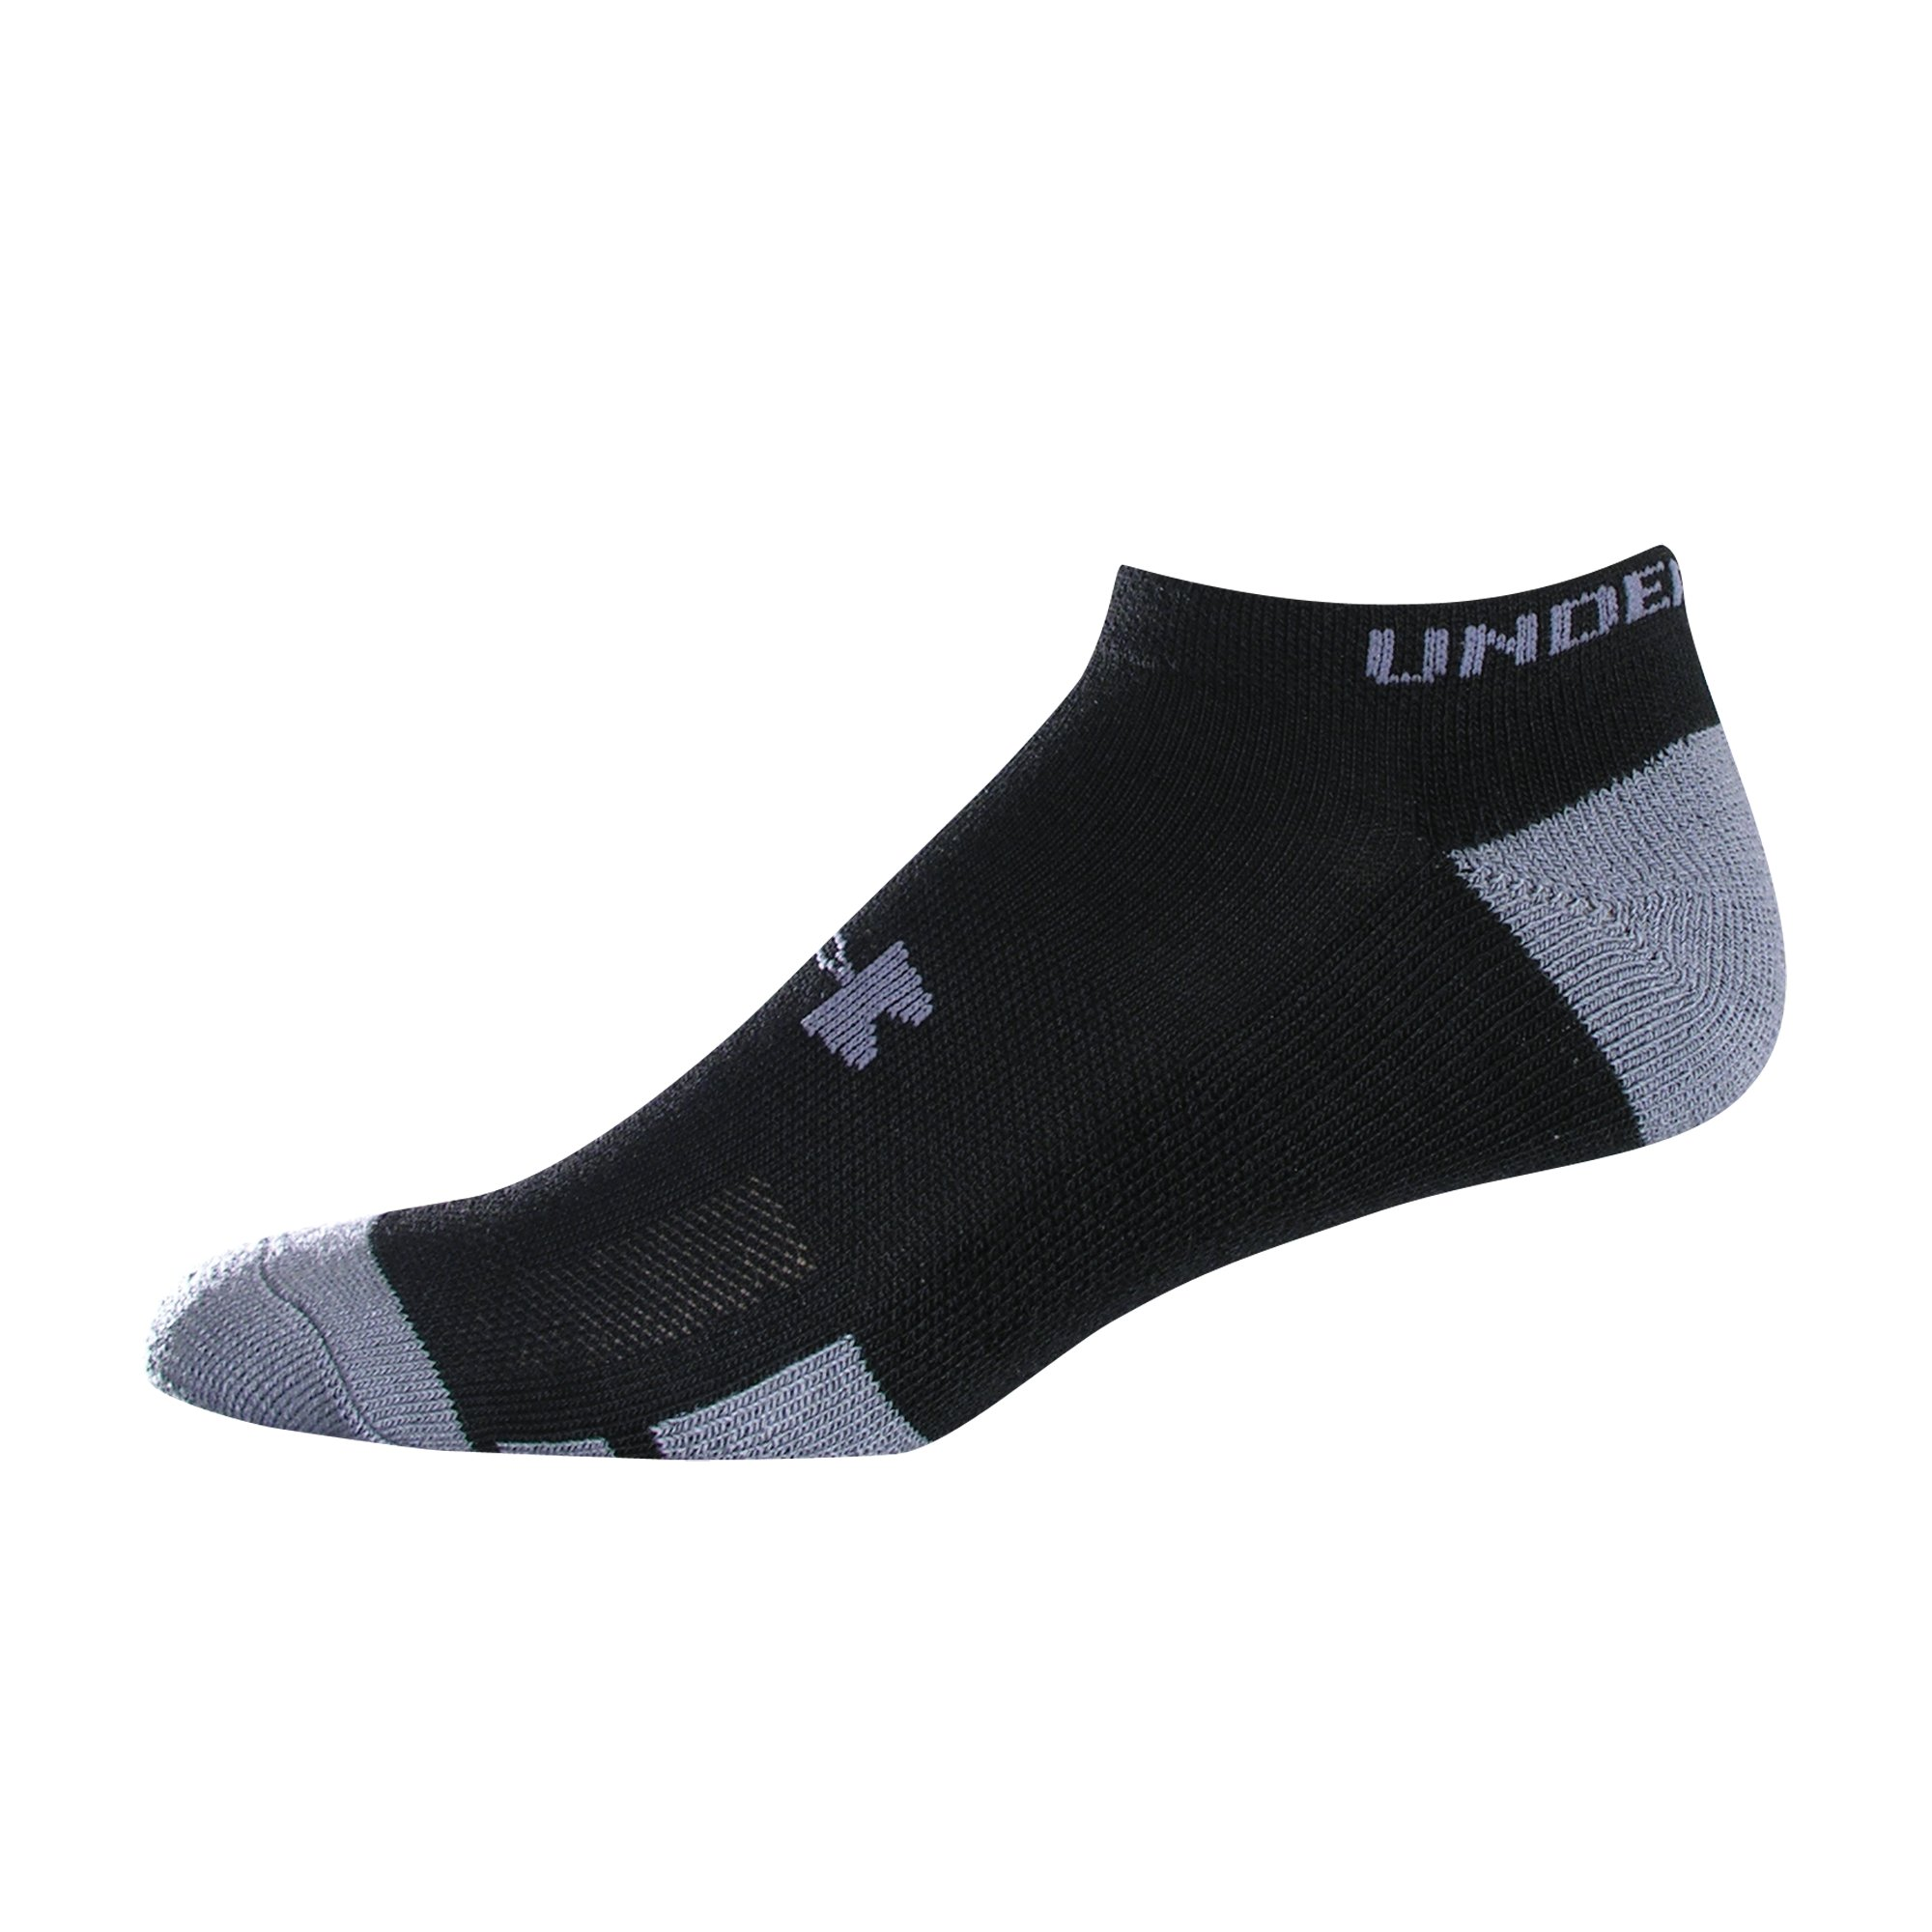 Men's Resistor No-Show Socks 6-Pack, Black